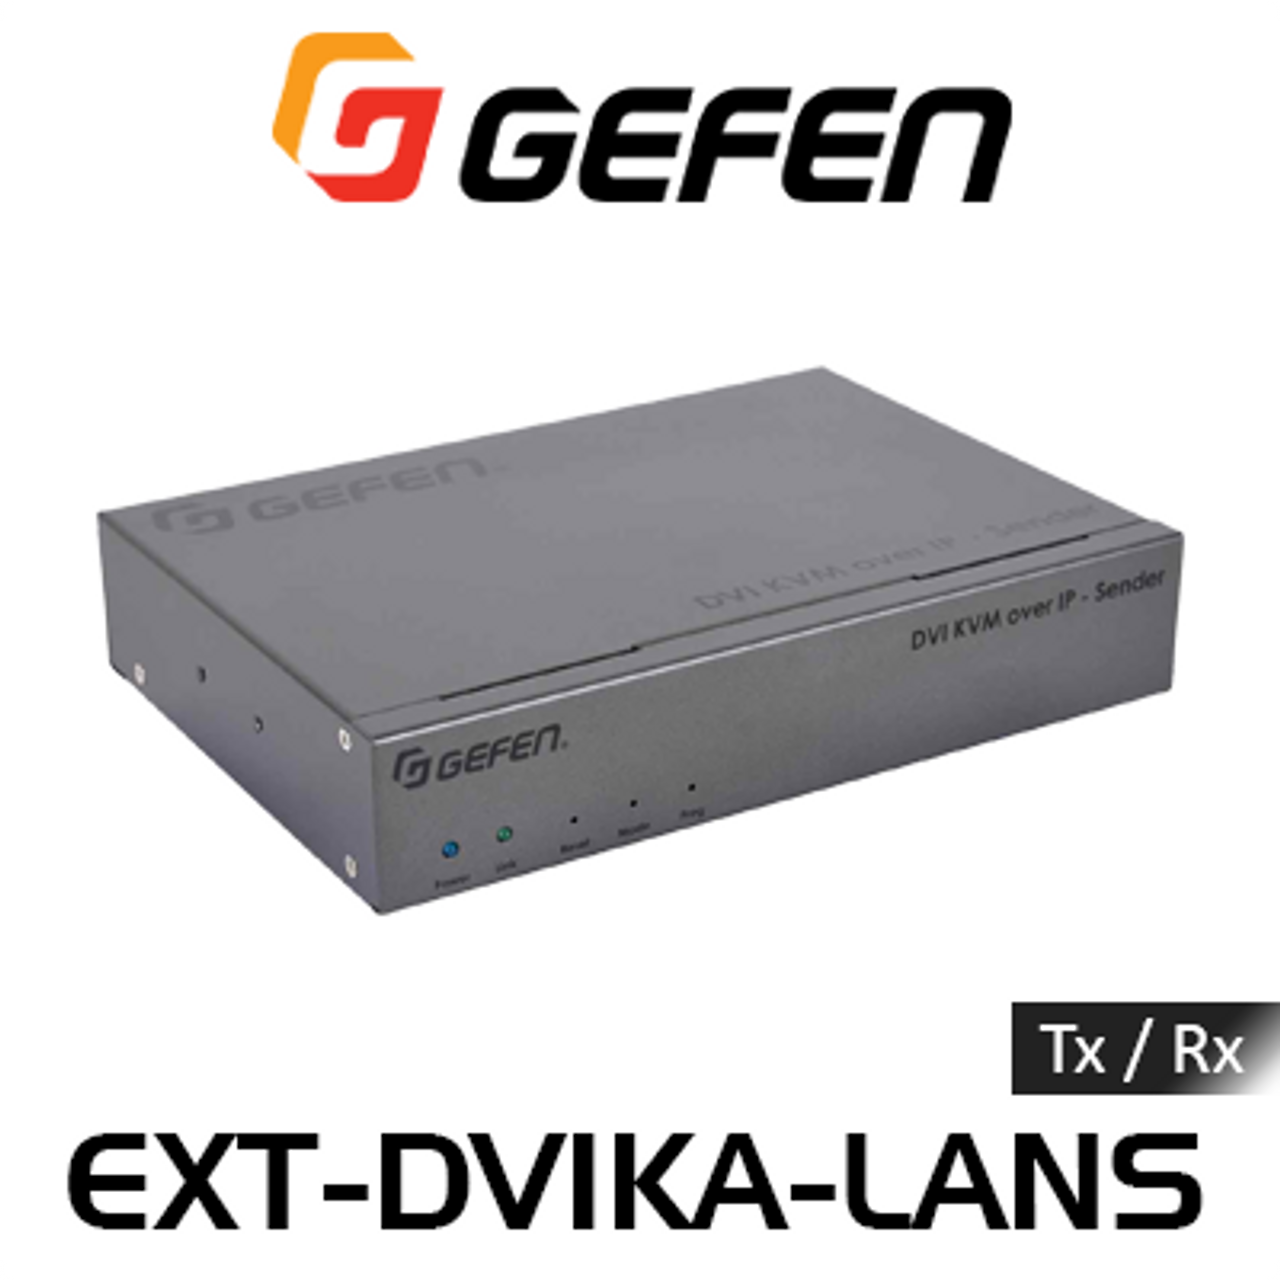 Gefen DVI KVM, USB, Analog Audio, IR & RS232 Over IP